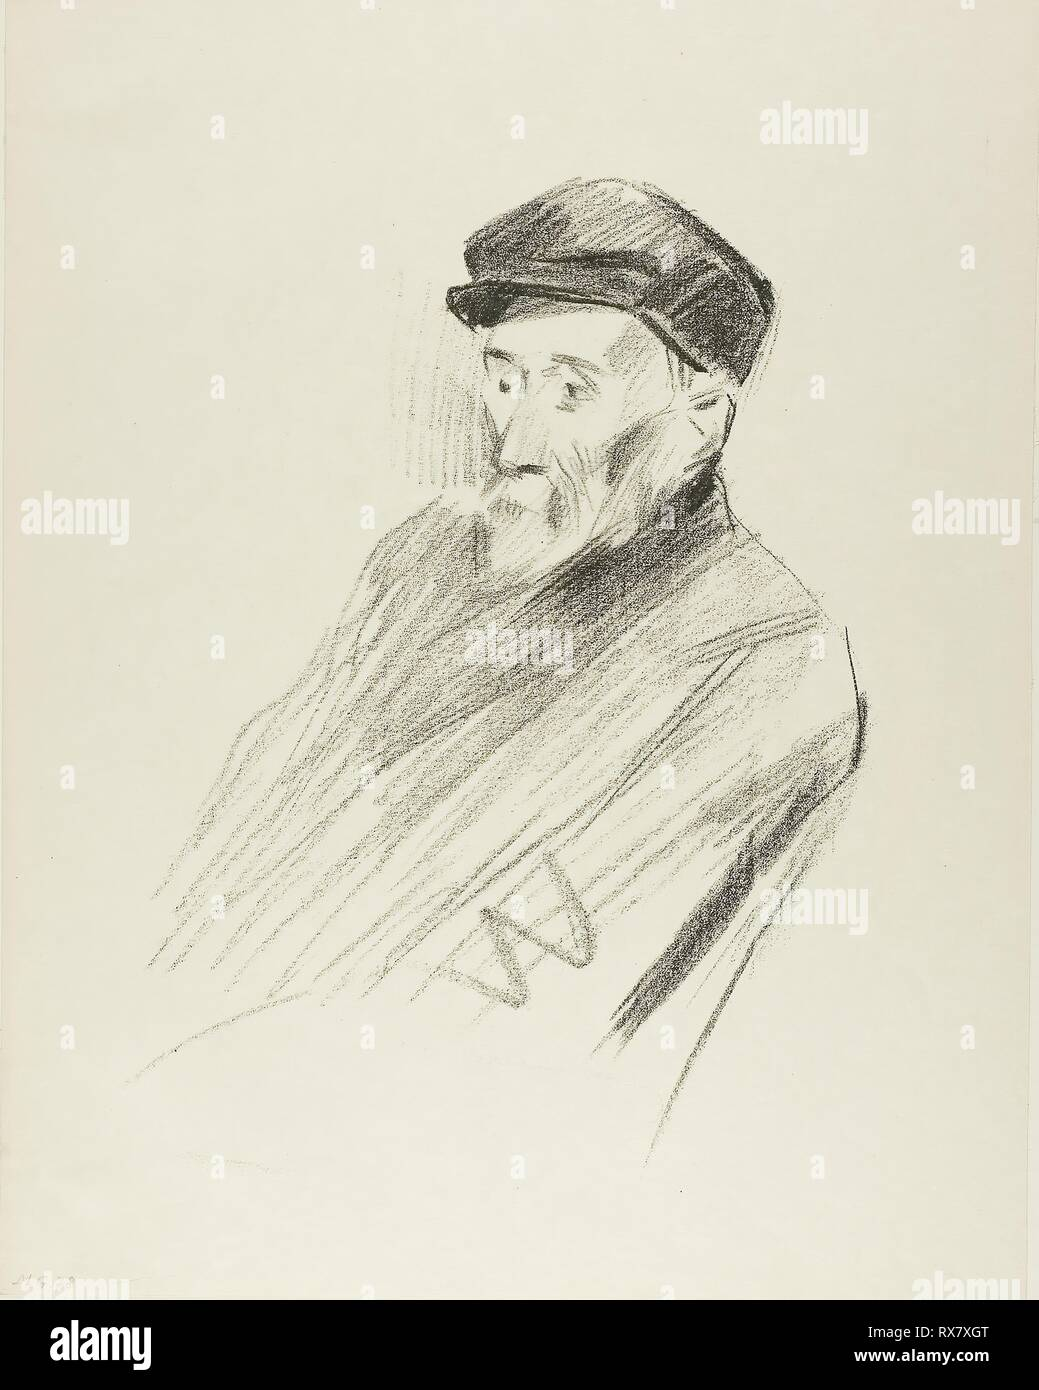 Portrait of Renoir, Third Plate. Jean Louis Forain; French, 1852-1931. Date: 1905. Dimensions: 272 × 202 mm (image); 351 × 276 mm (sheet). Lithograph on cream wove paper. Origin: France. Museum: The Chicago Art Institute. - Stock Image